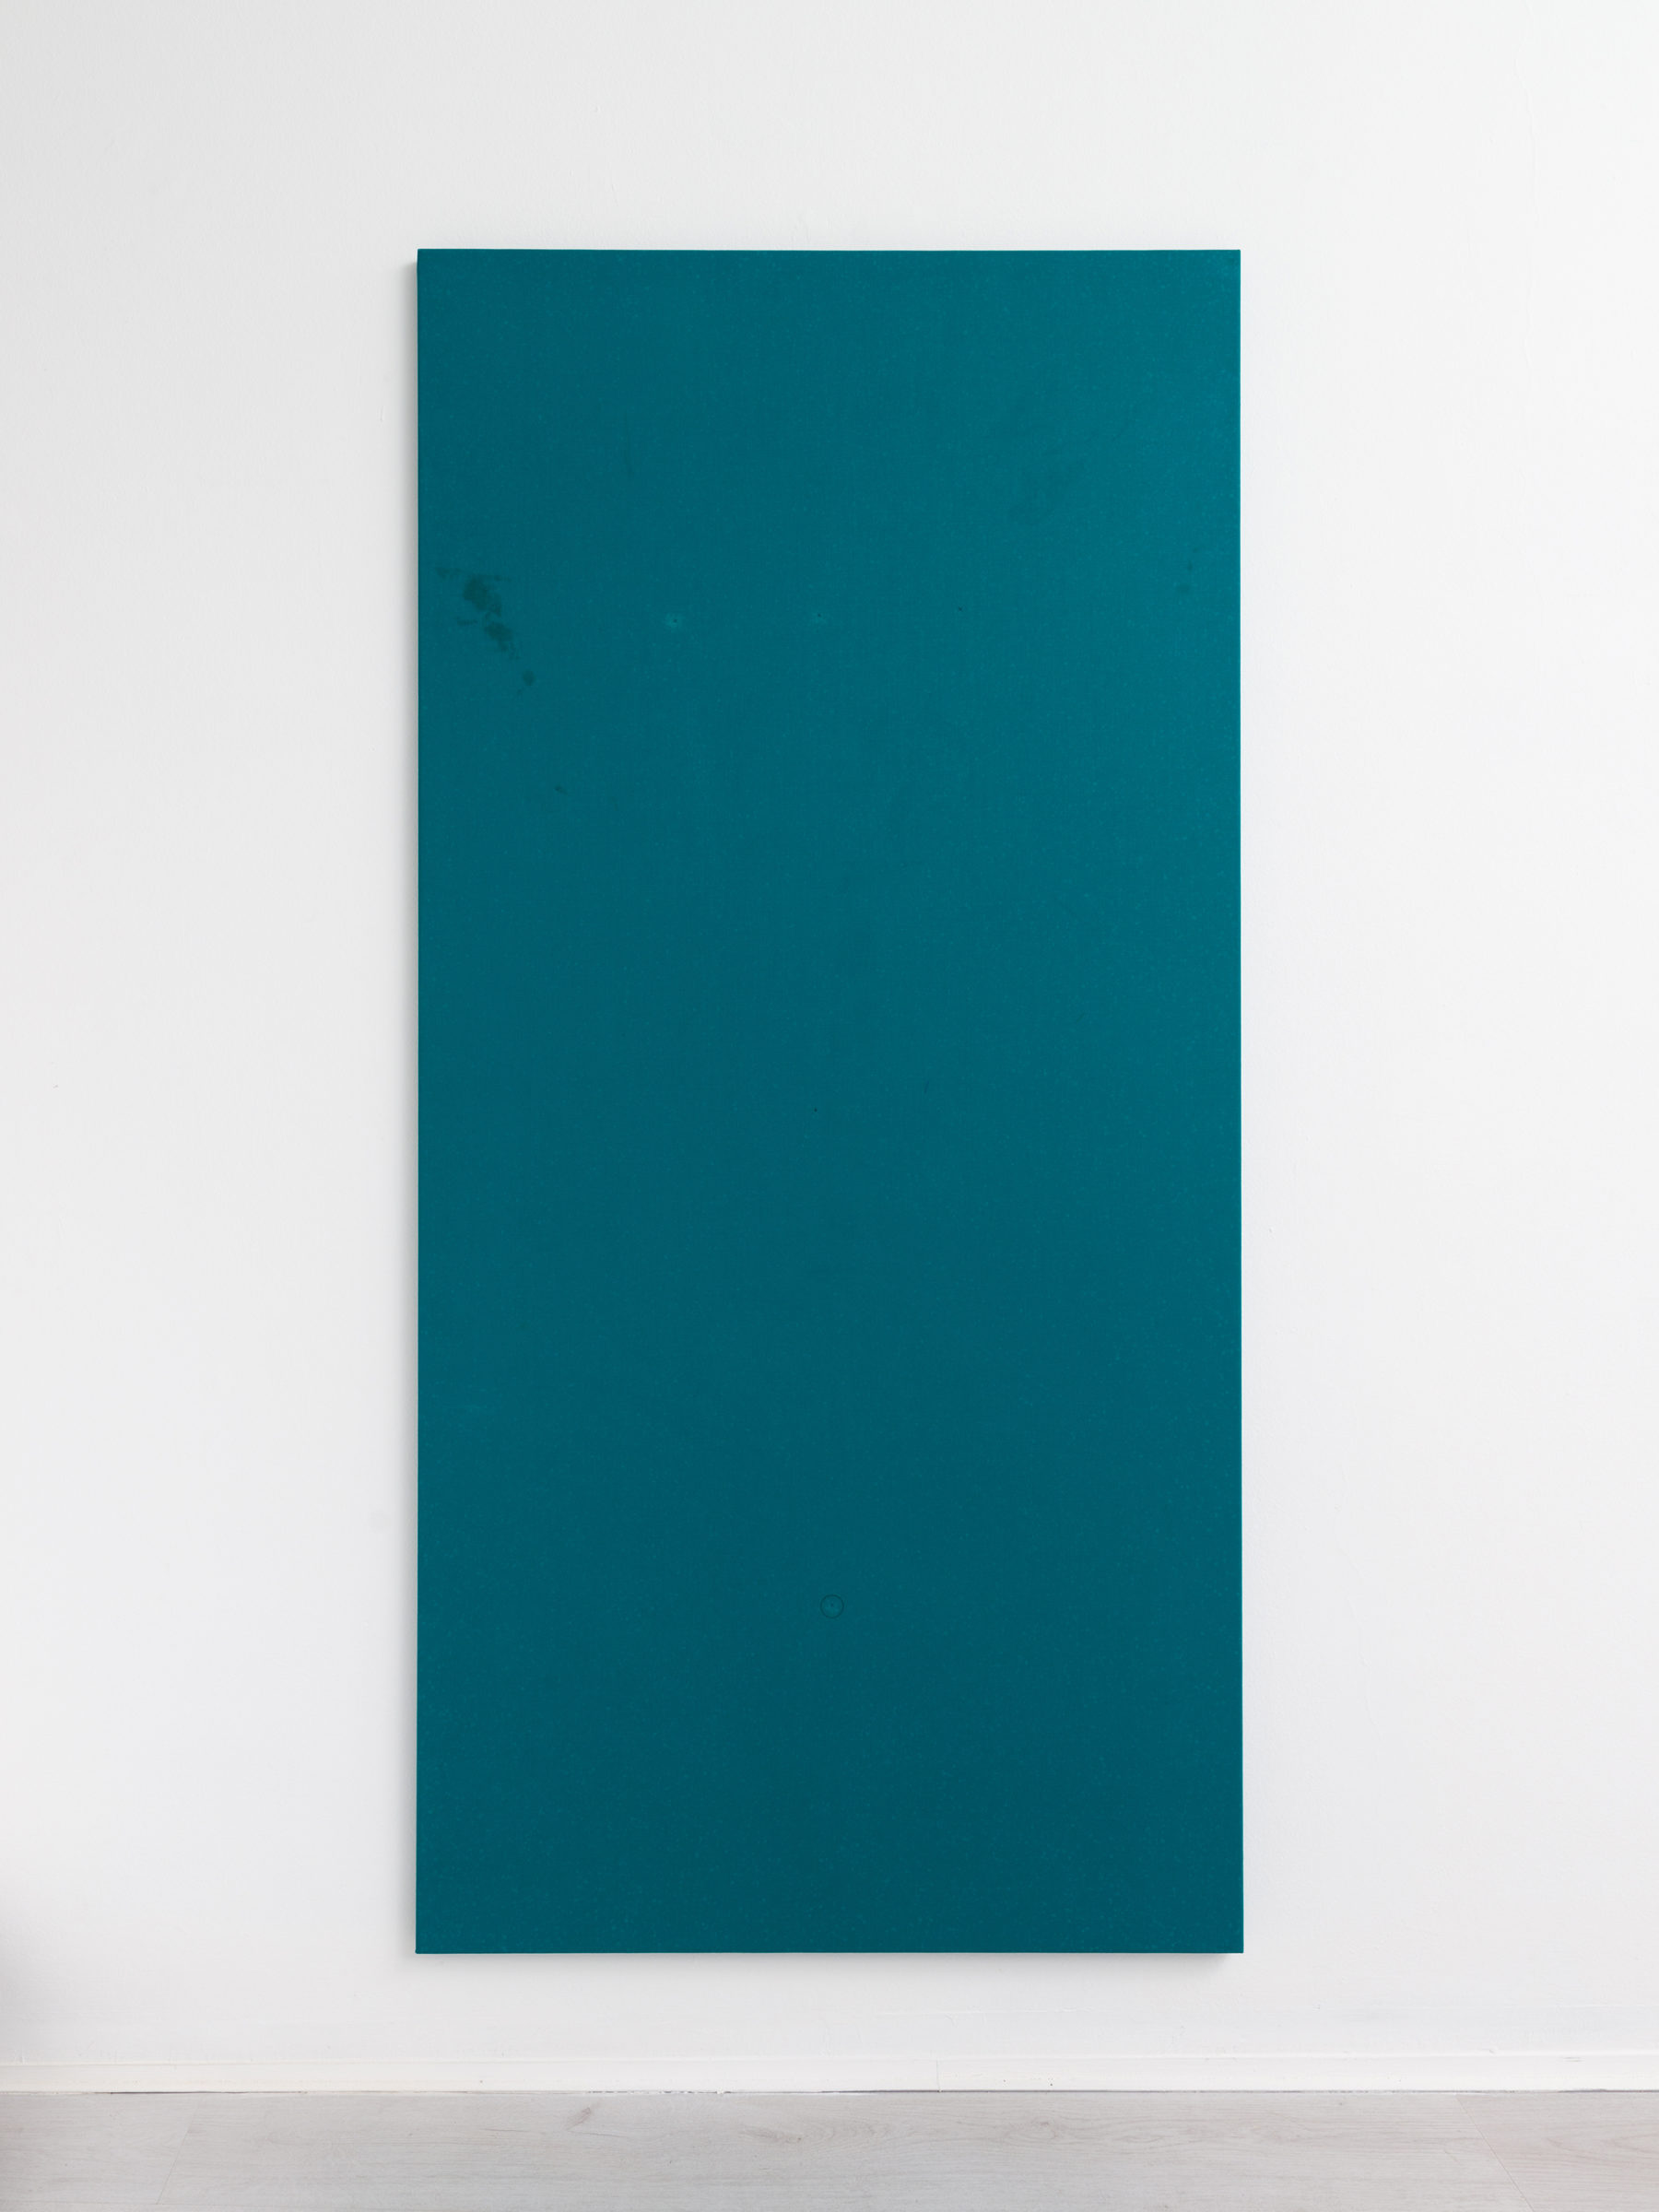 1.Simon Laureyns, used pooltable felt, 190x90cm - 2016